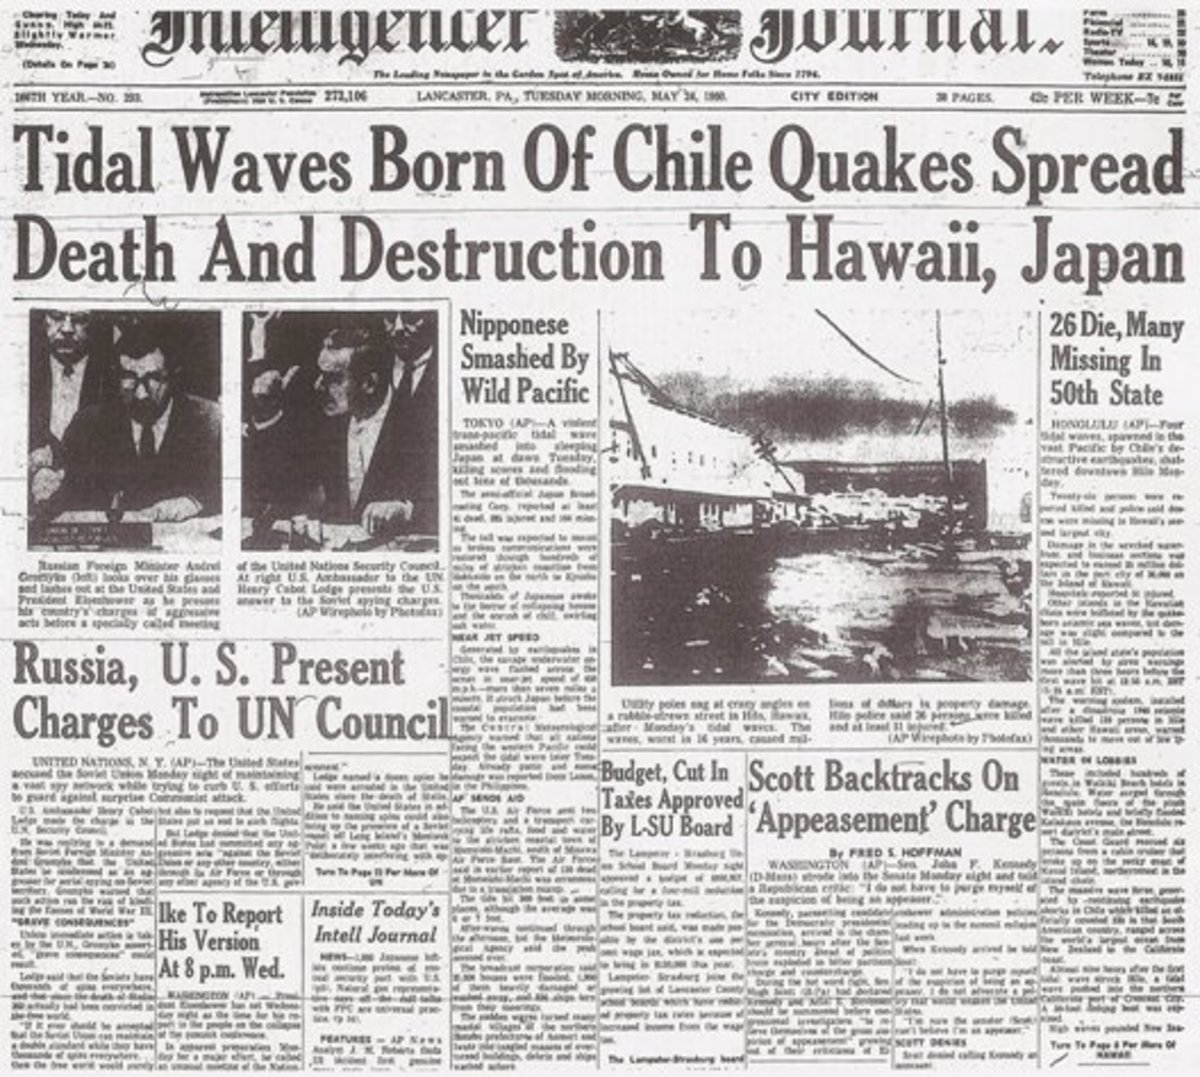 The 1960 Chile earthquake was front page news for many days (link to source was not working as of 20150915).